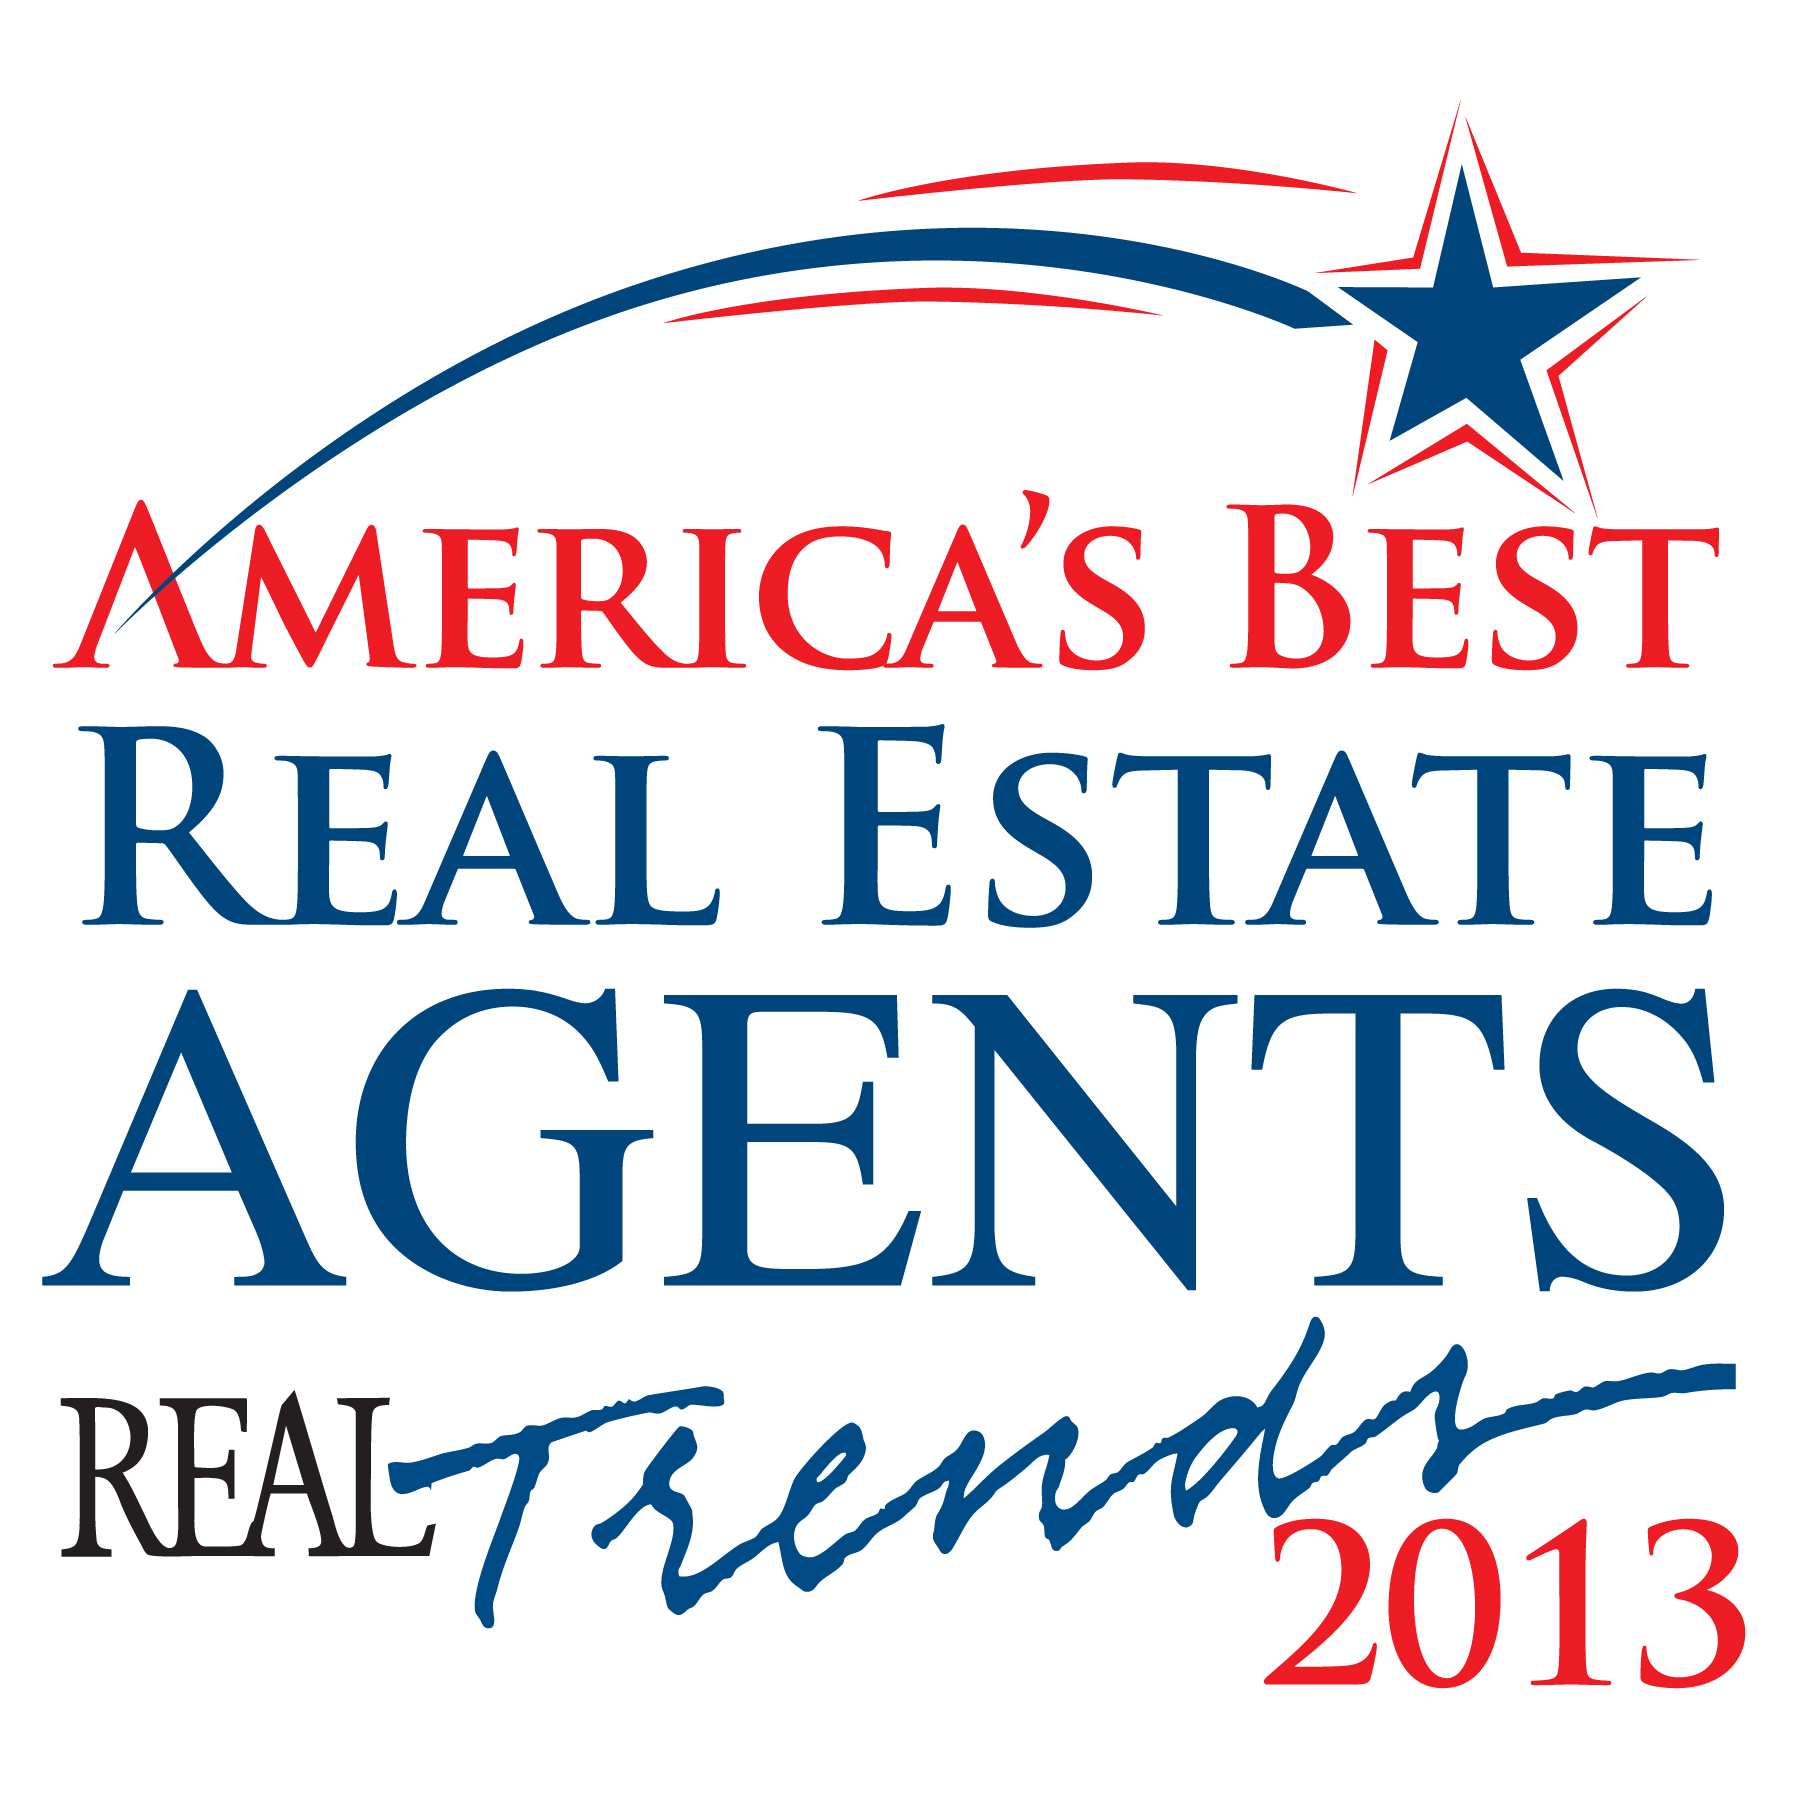 Wonderful Americau0027s Best Real Estate Agents By Real Trends